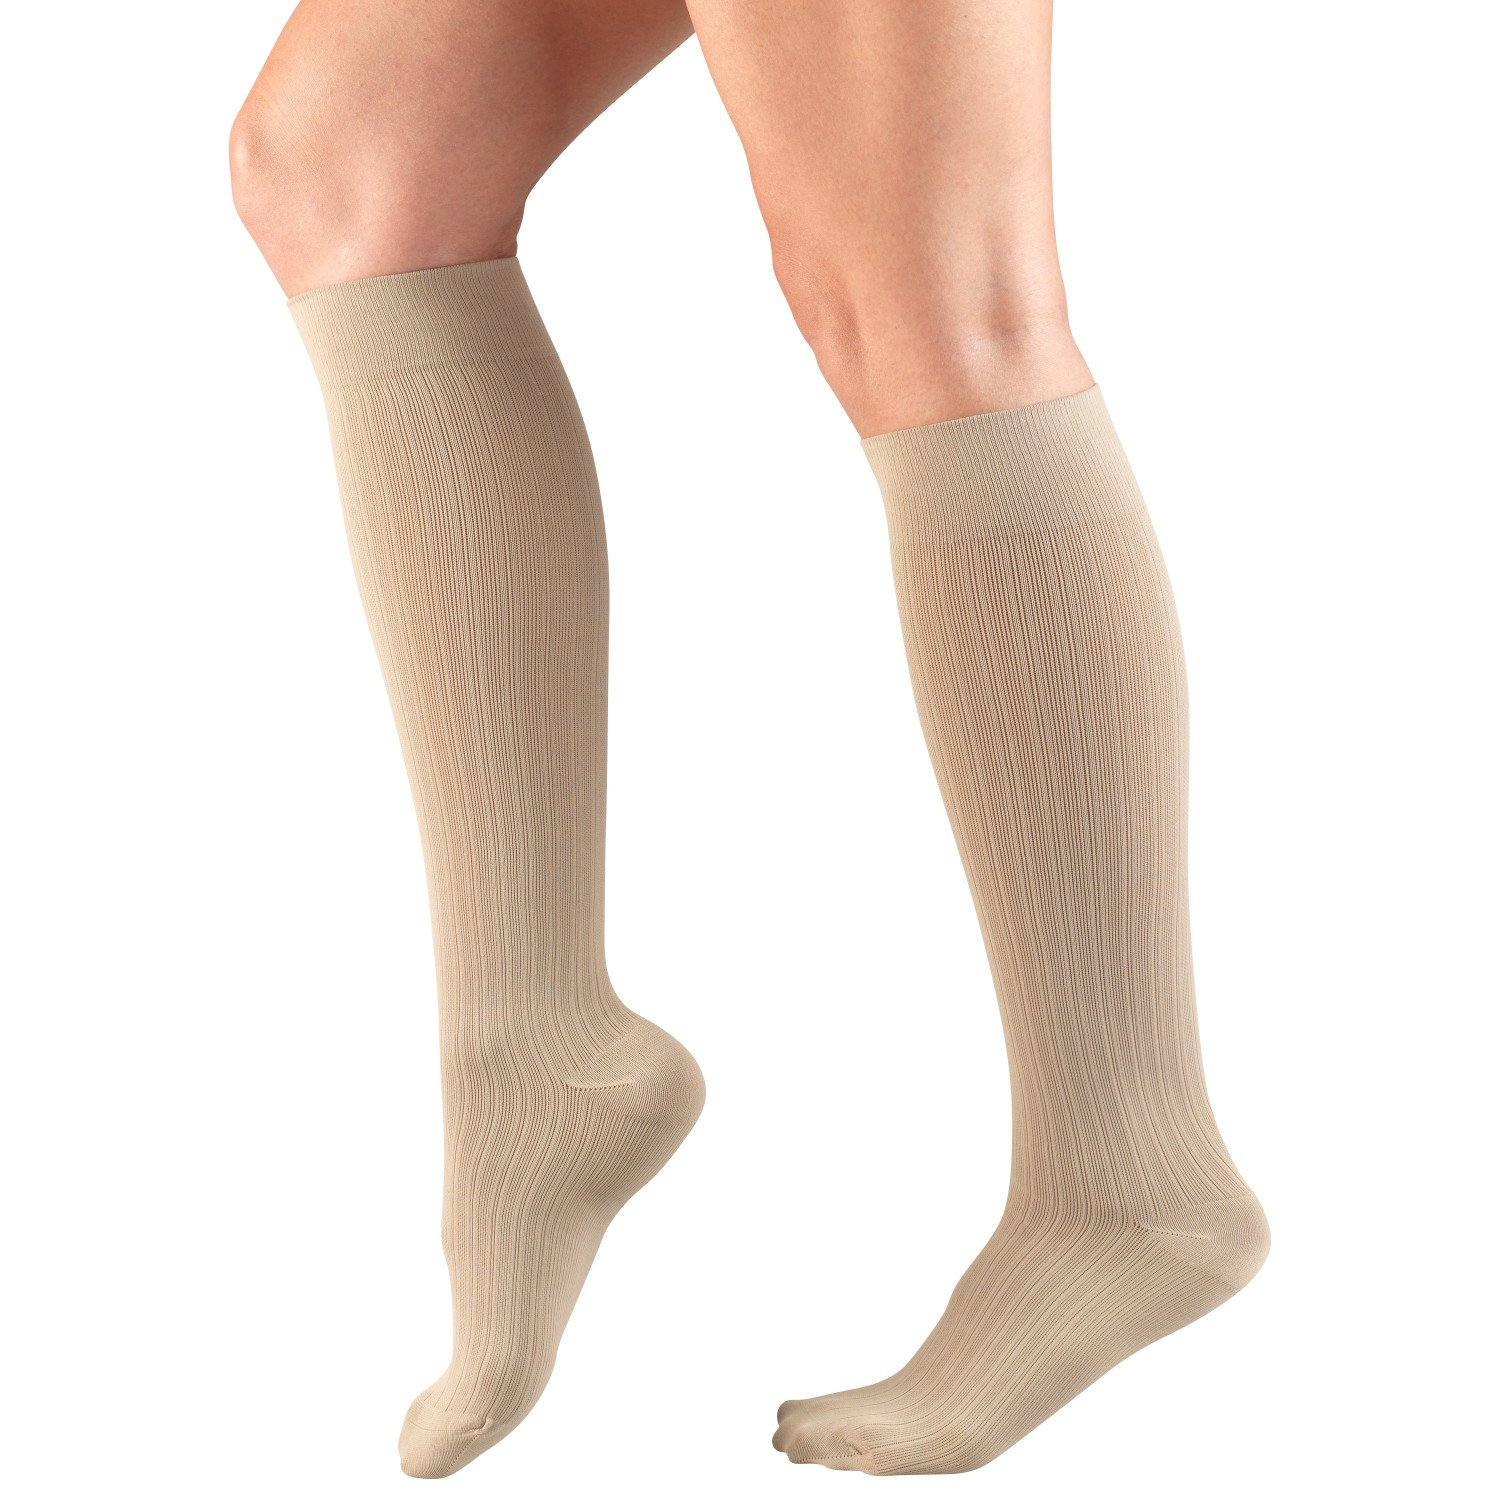 Amazon.com: Truform Womens Fit Compression Socks, Rib Knit Pattern, 15-20 mmHg, Tan, Small (Pack of 2): Health & Personal Care